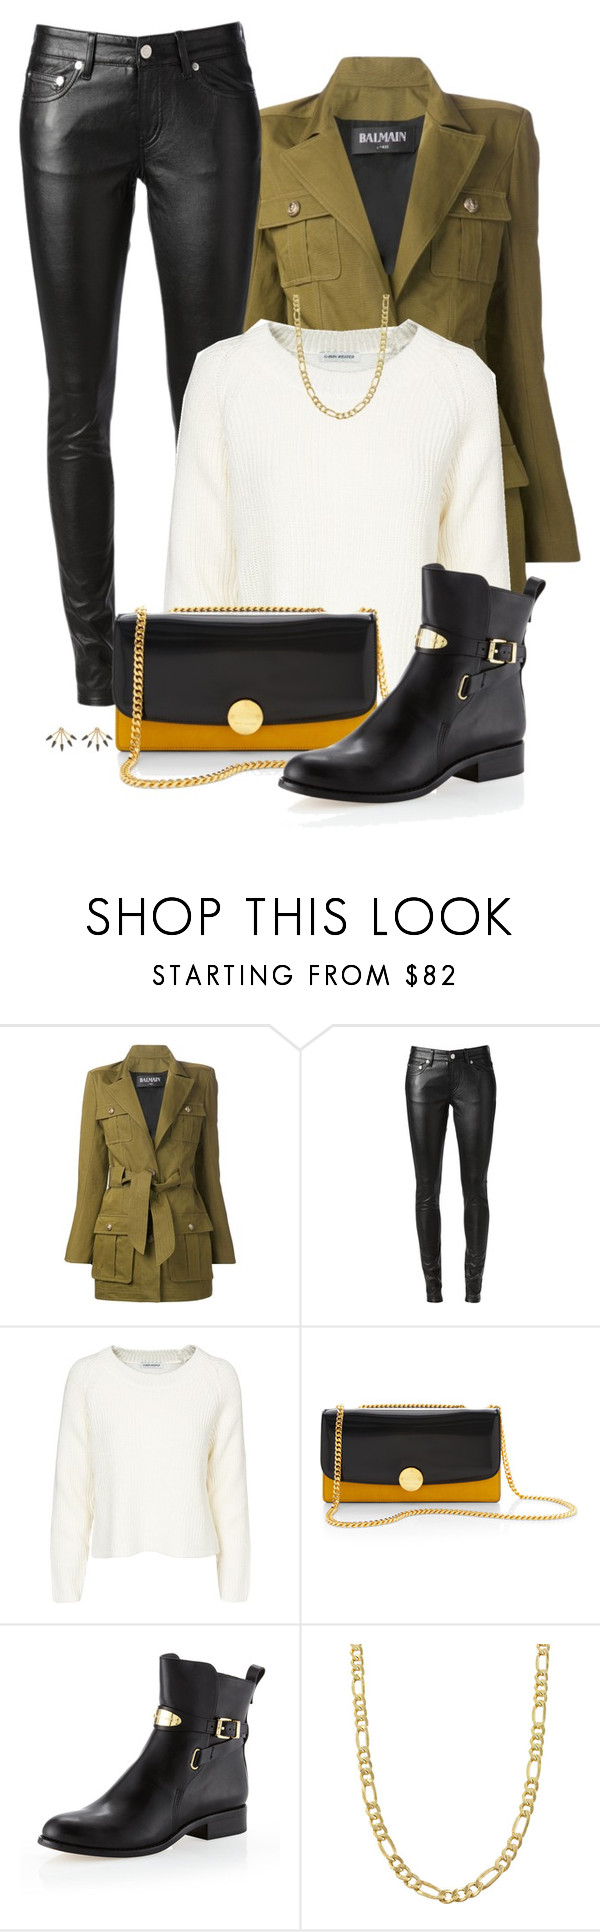 """Suit Up"" by livinglifeincolor ❤ liked on Polyvore featuring Balmain, Yves Saint Laurent, Carin Wester, Marc Jacobs, MICHAEL Michael Kors, Fremada, Pamela Love, leatherpants, ankleboots and chainnecklace"